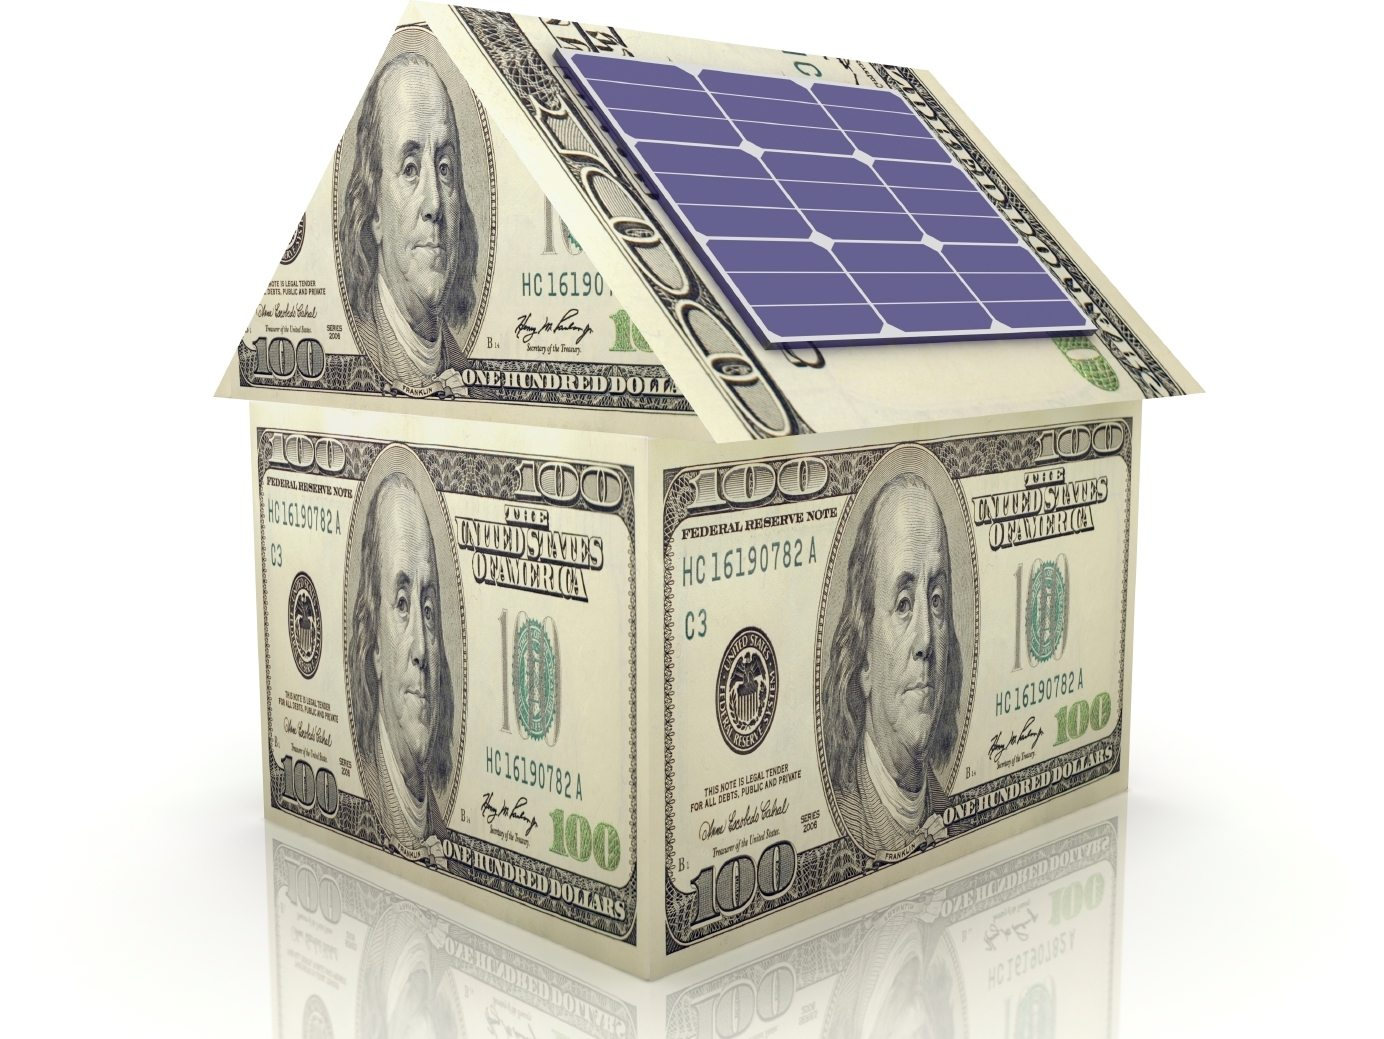 How to Buy Solar